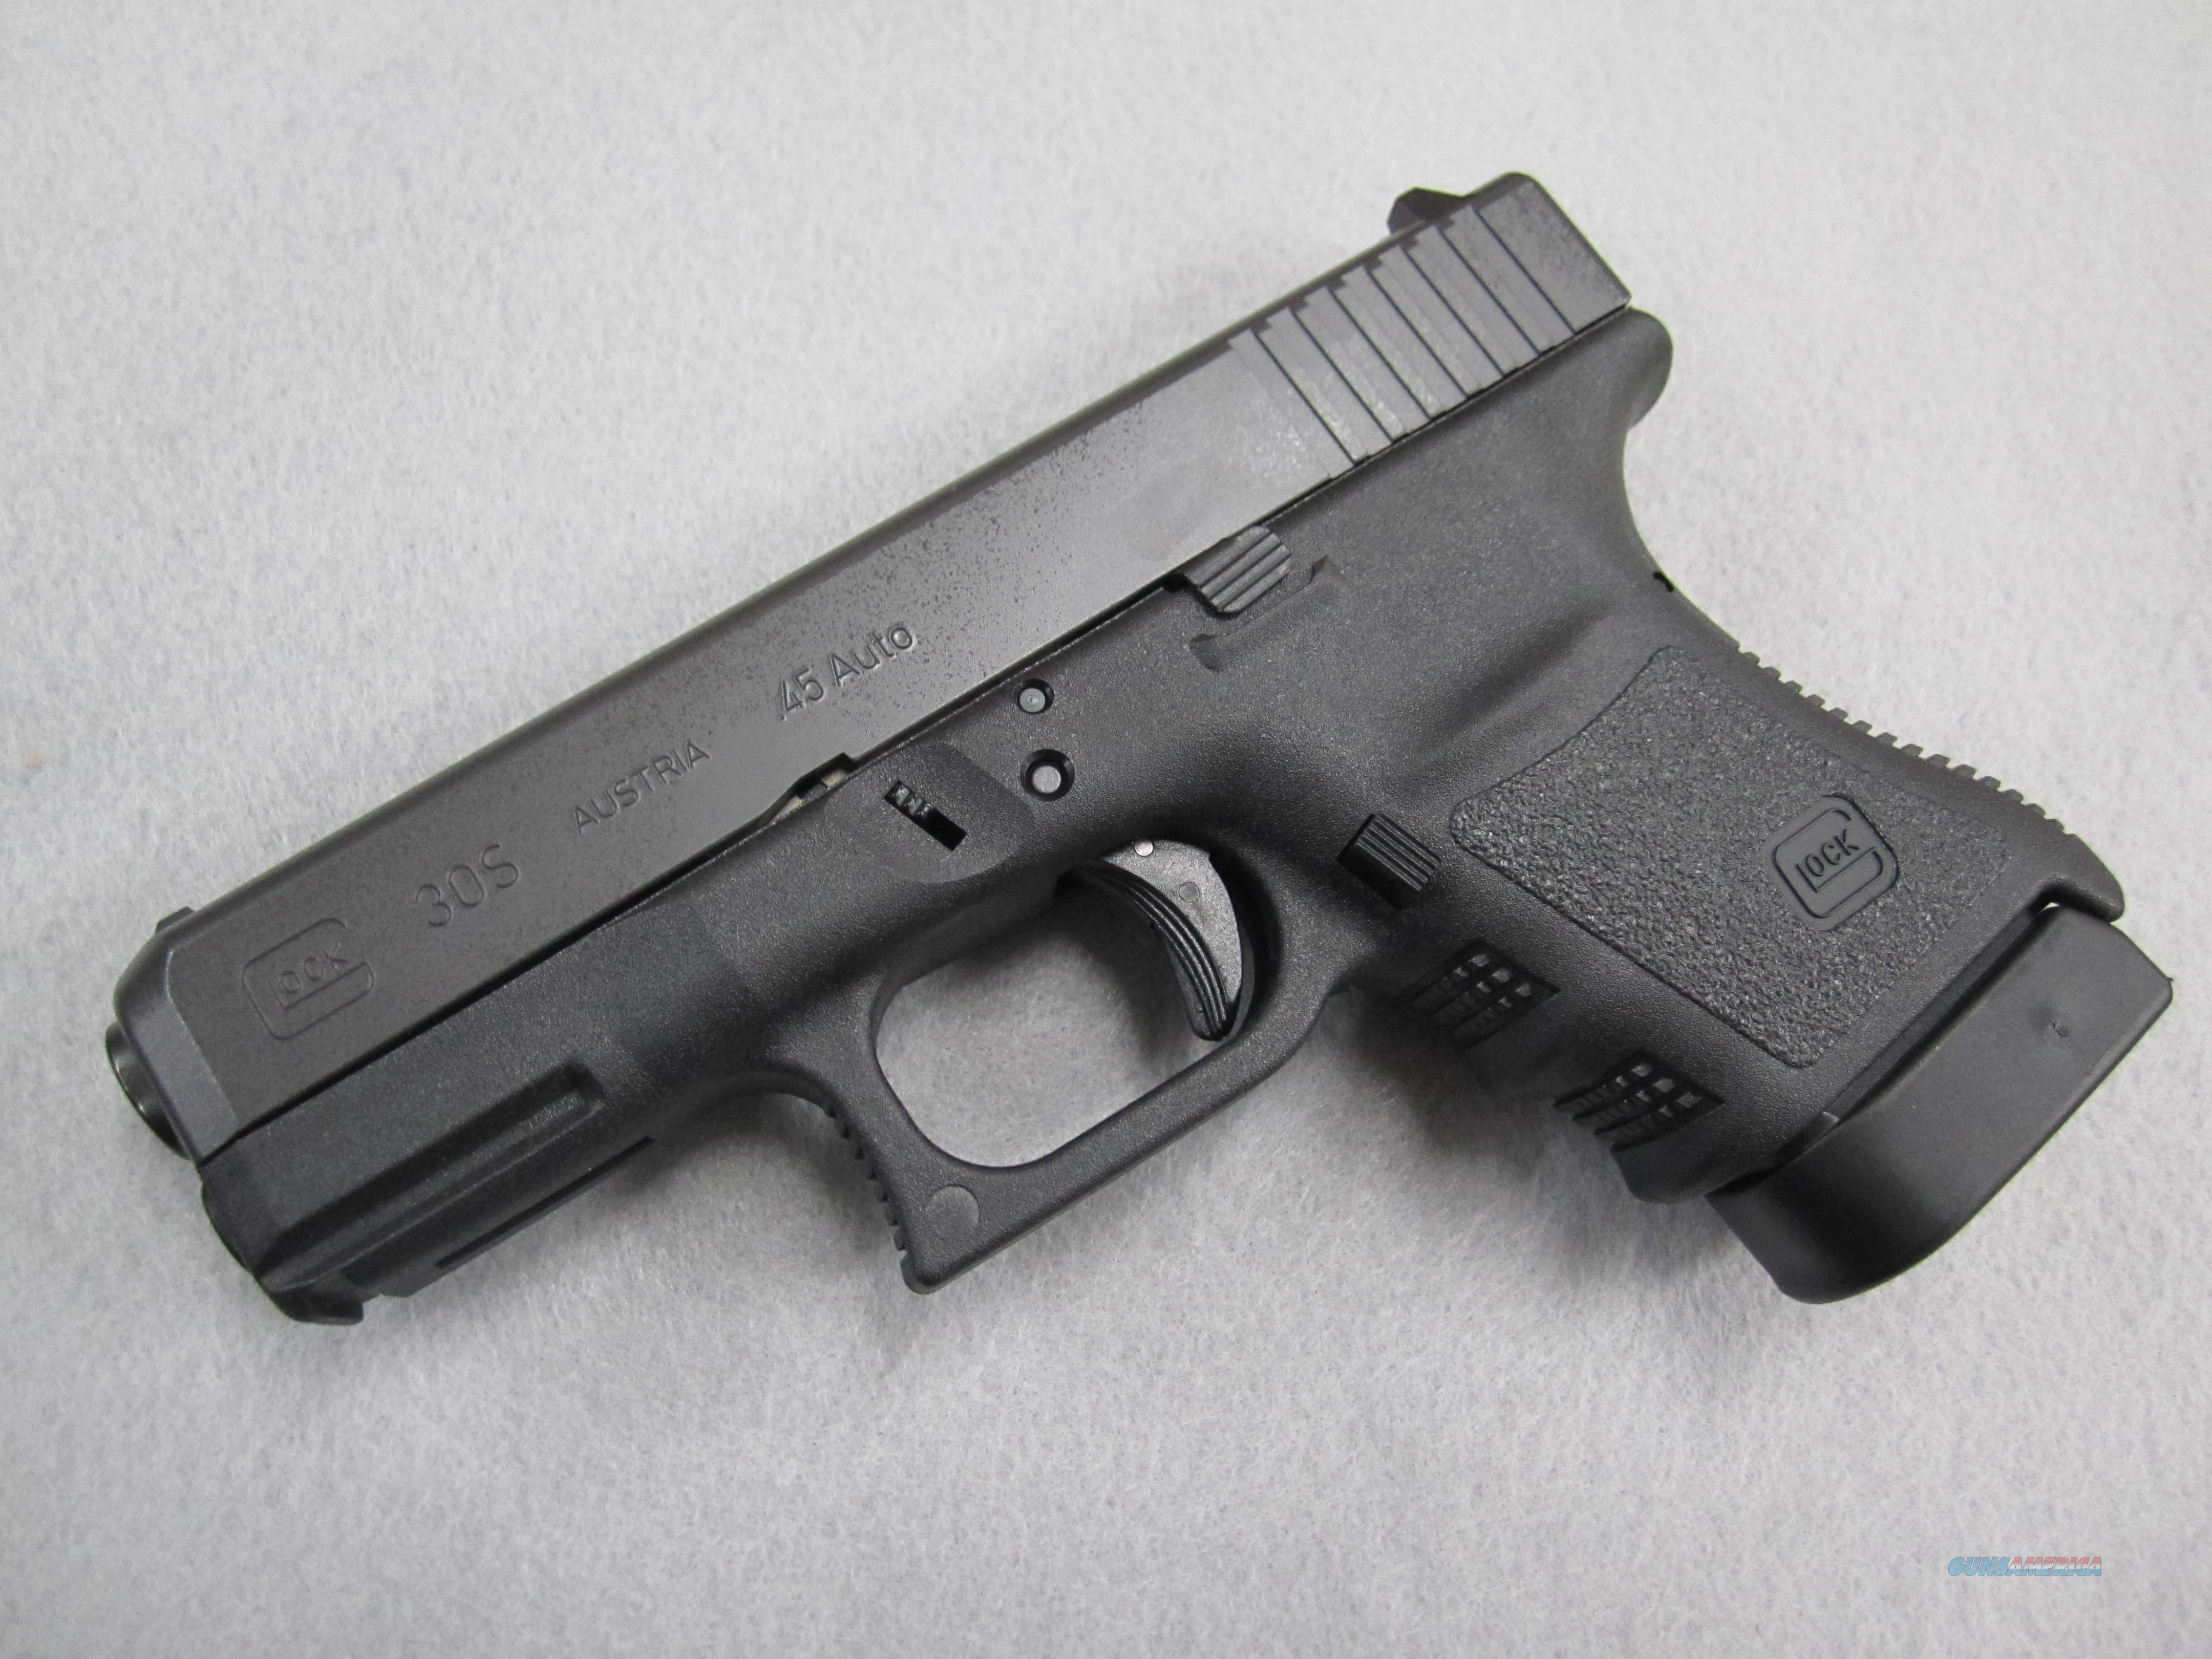 Glock 30S  in .45 ACP. Never fired!  Guns > Pistols > Glock Pistols > 29/30/36